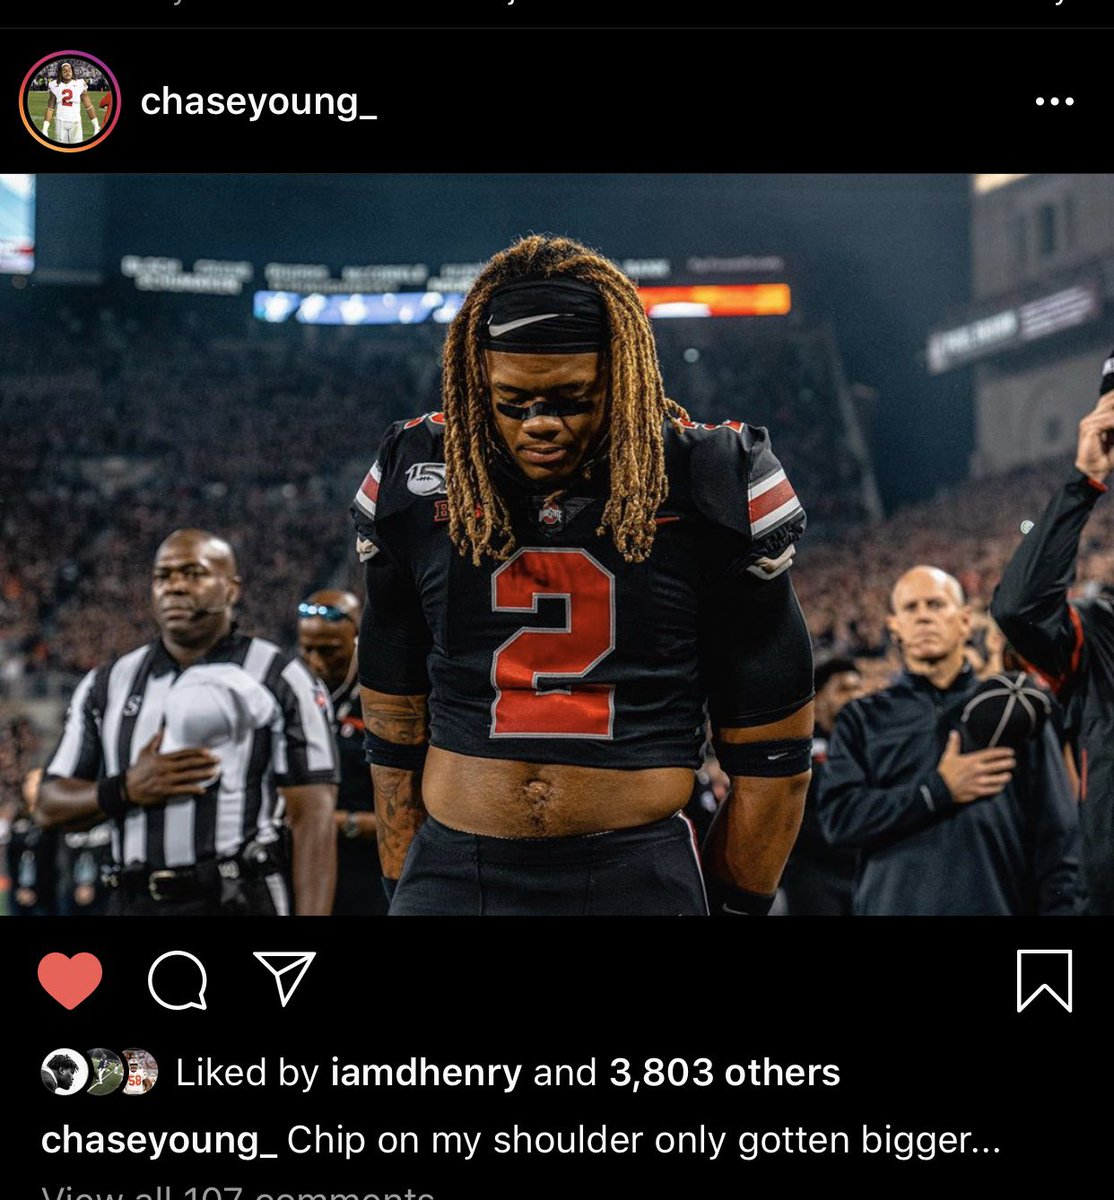 I wonder if Chase Young is excited for the Penn State game.